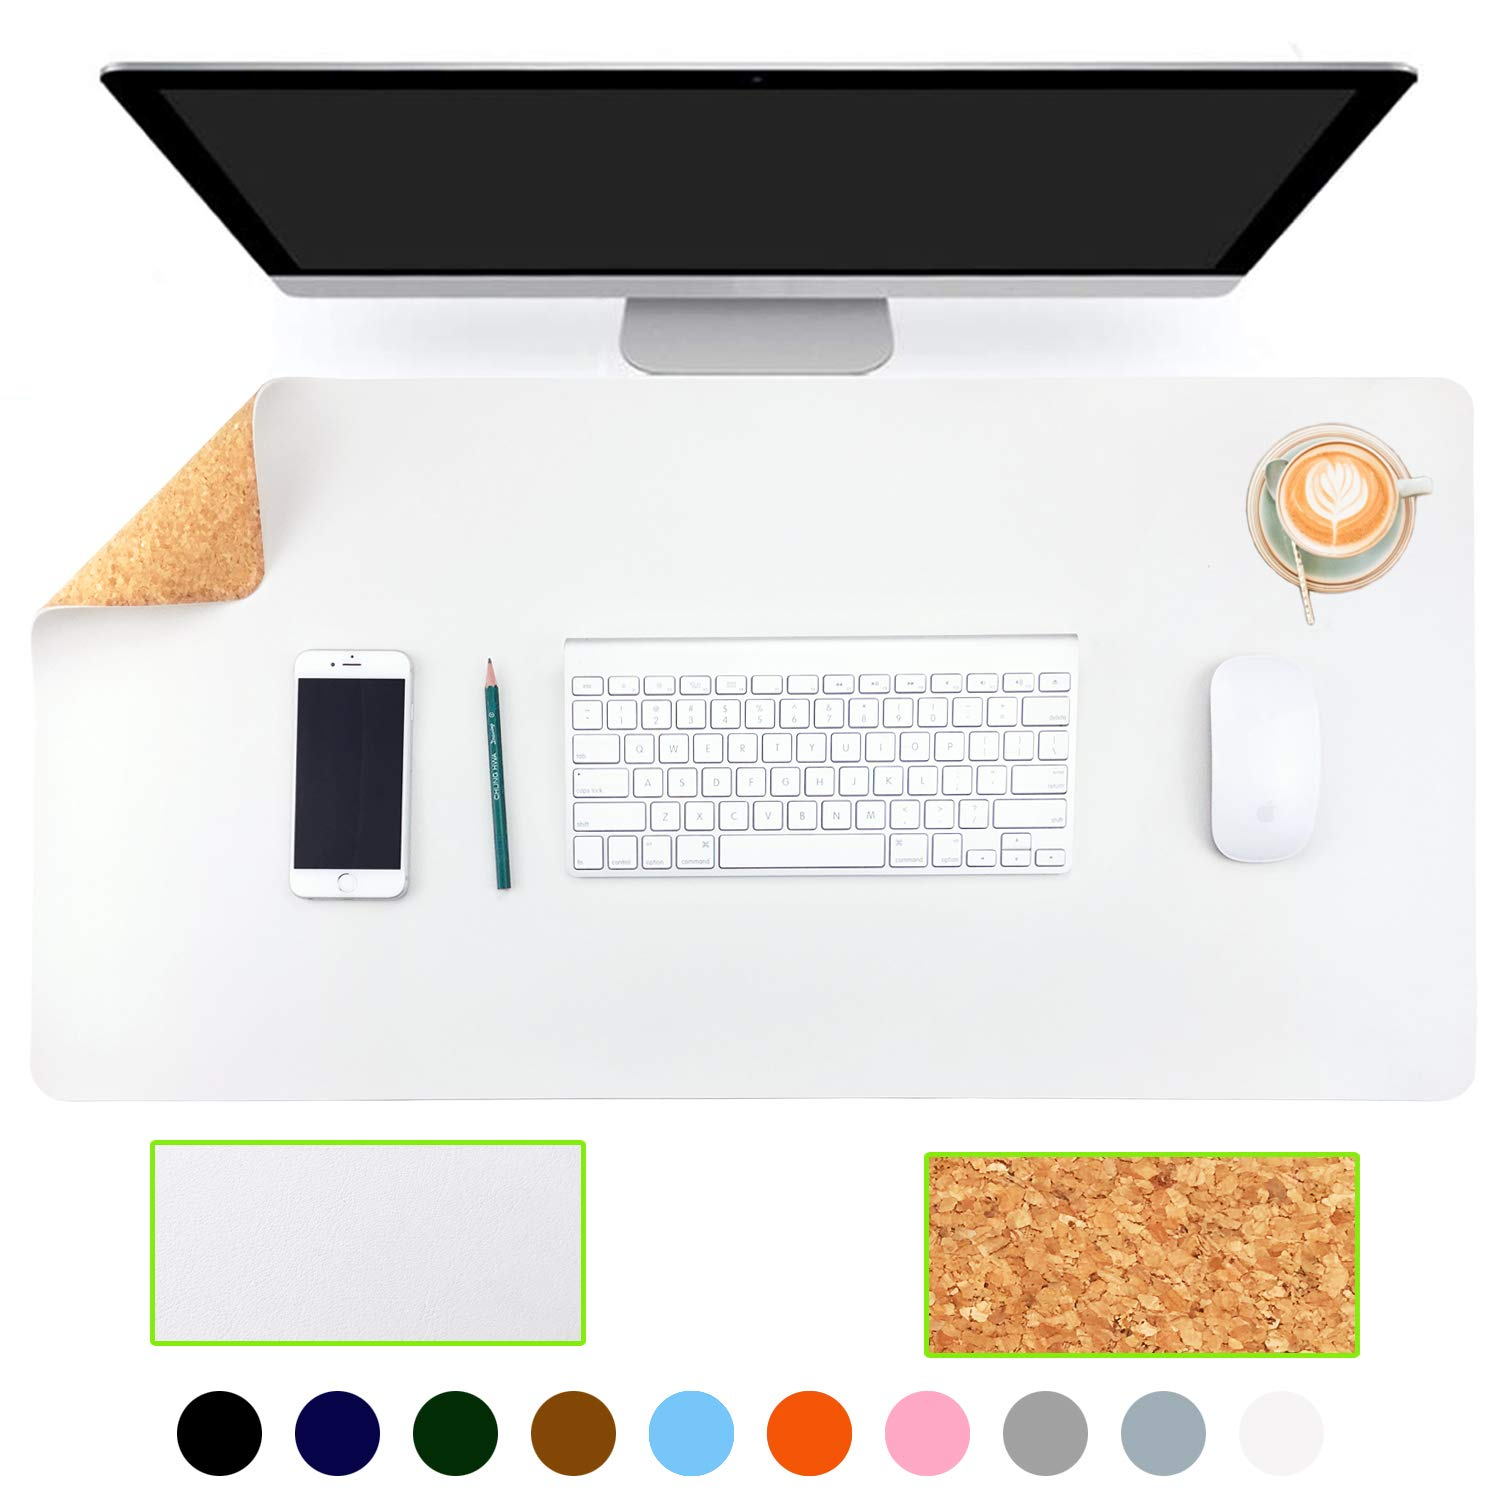 "Aothia Eco-Friendly Natural Cork & Leather Double-Sided Office Desk Mat 31.5"" x 15.7"" Mouse Pad Smooth Surface Soft Easy Clean Waterproof PU Leather Desk Protector for Office/Home Gaming (White+Cork)"